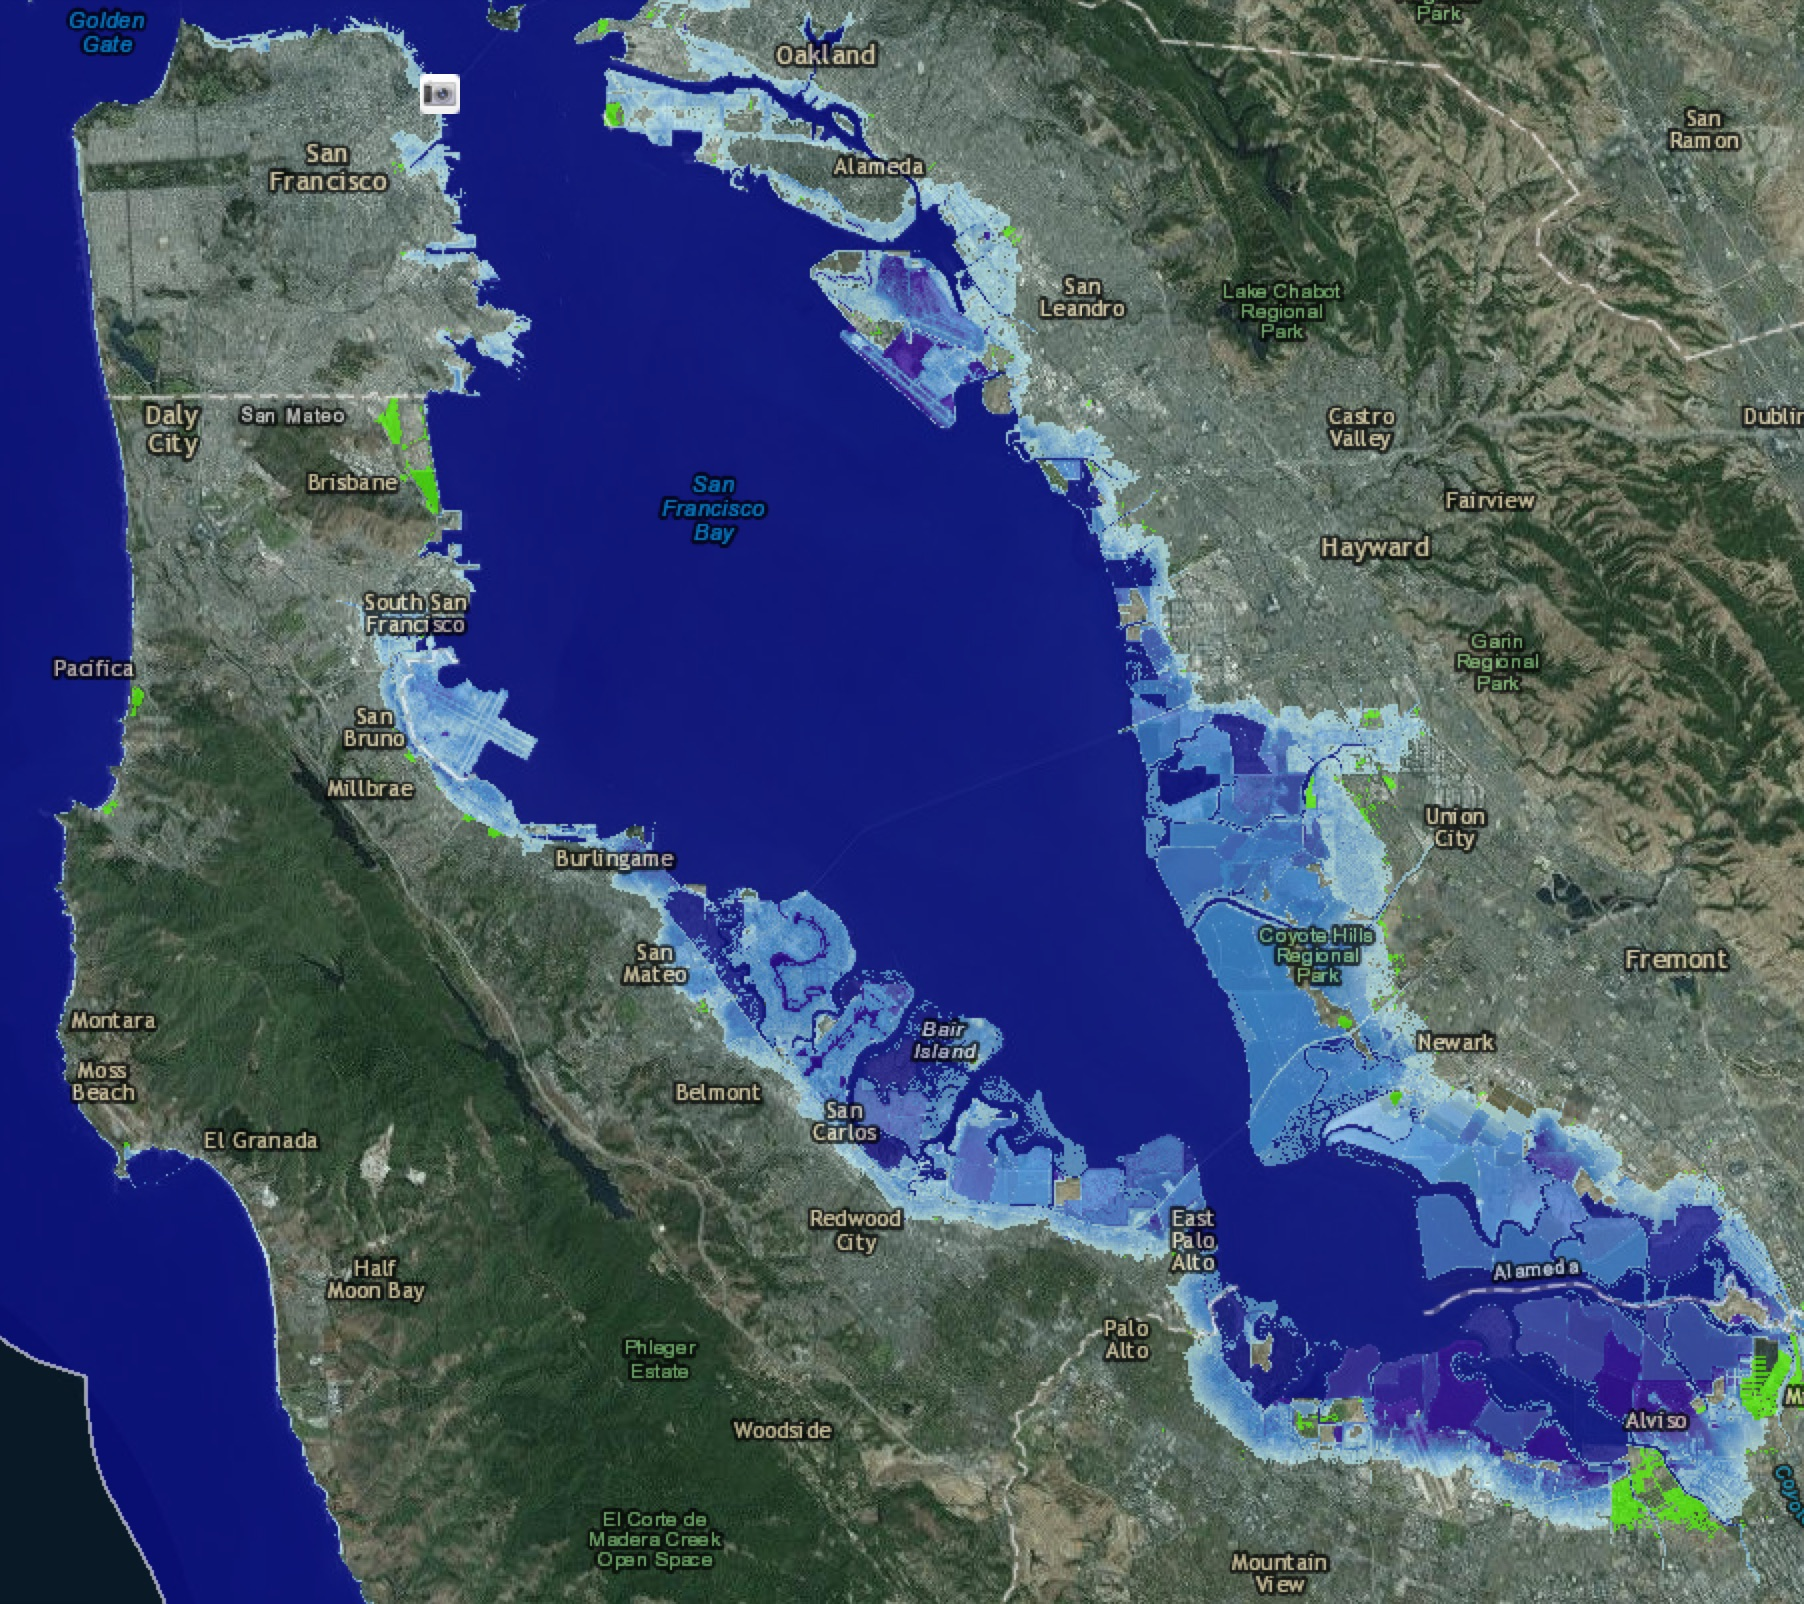 NOAA-Silicon-Valley-seal-level-rise-map